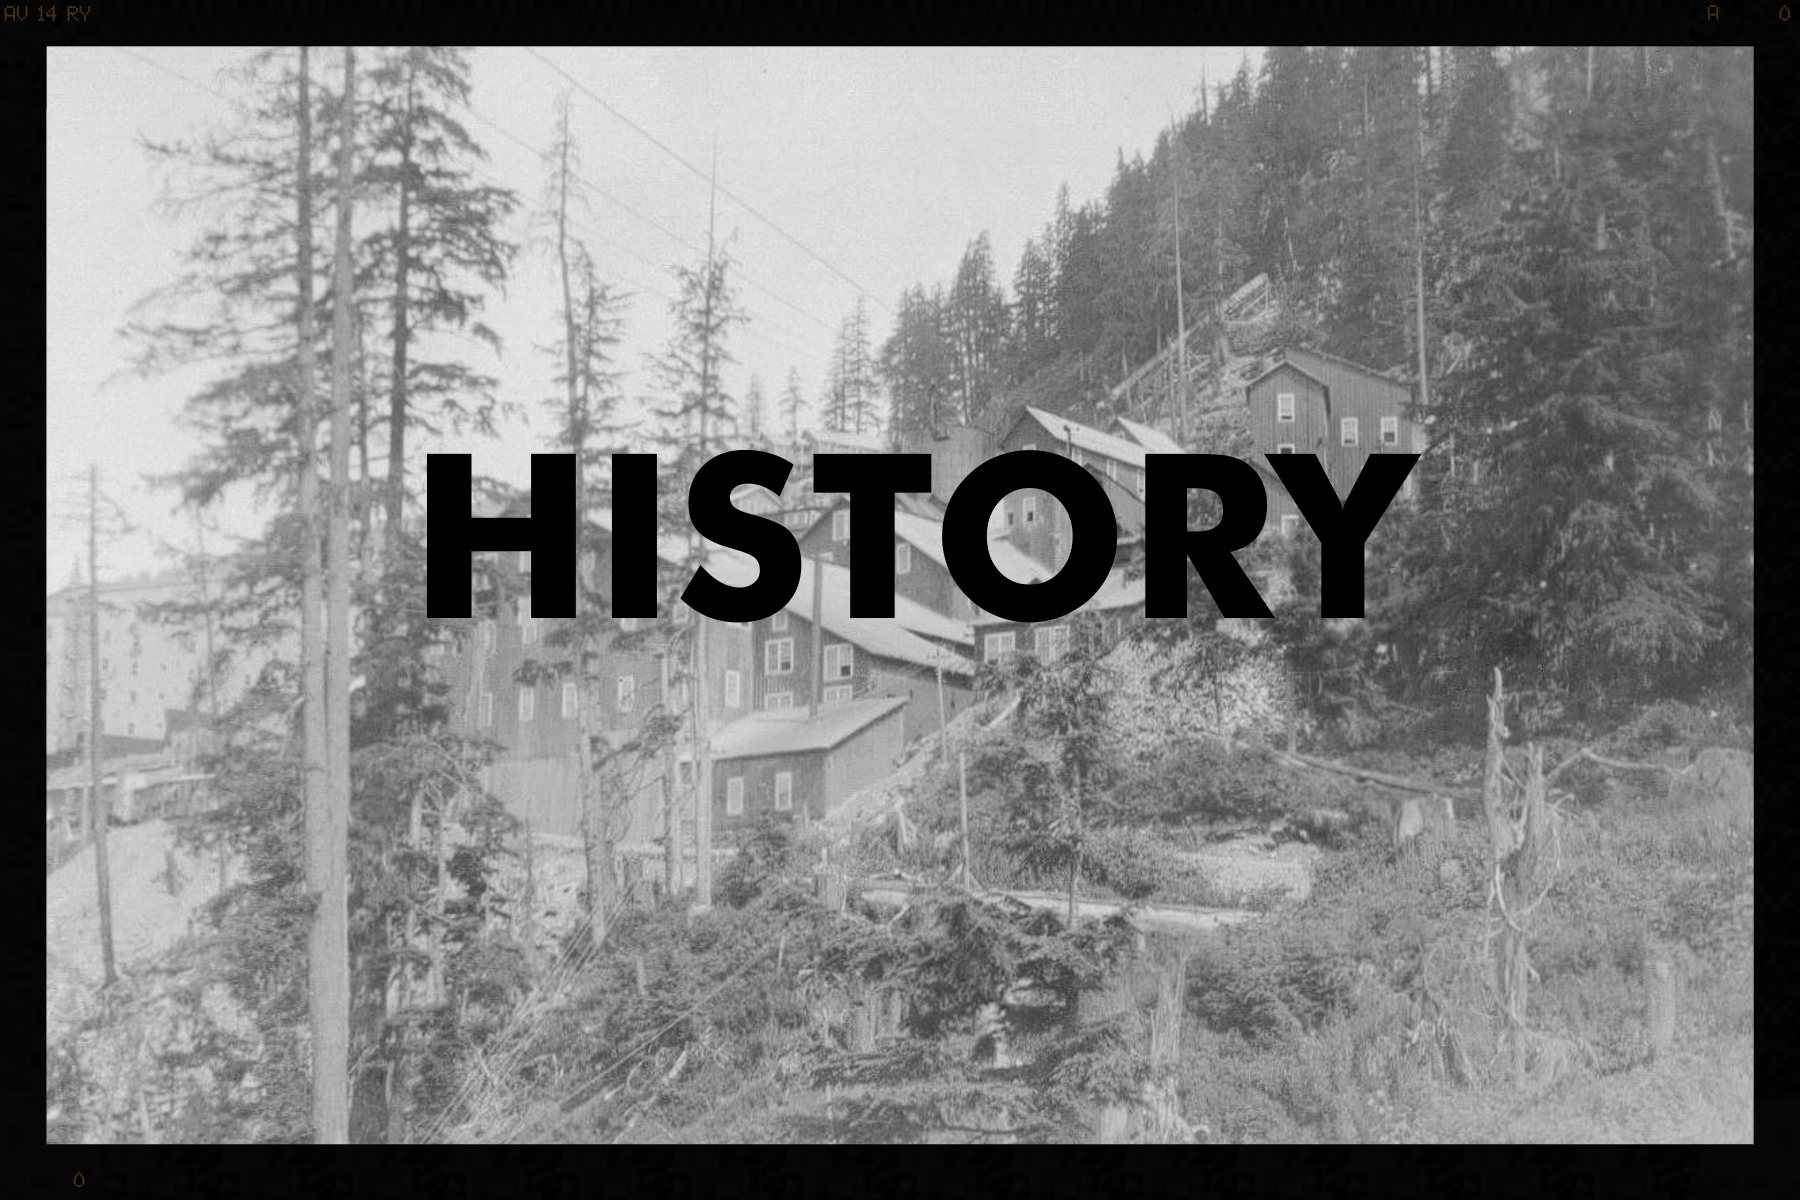 History of the Stewart Area and the Red Mountain Project